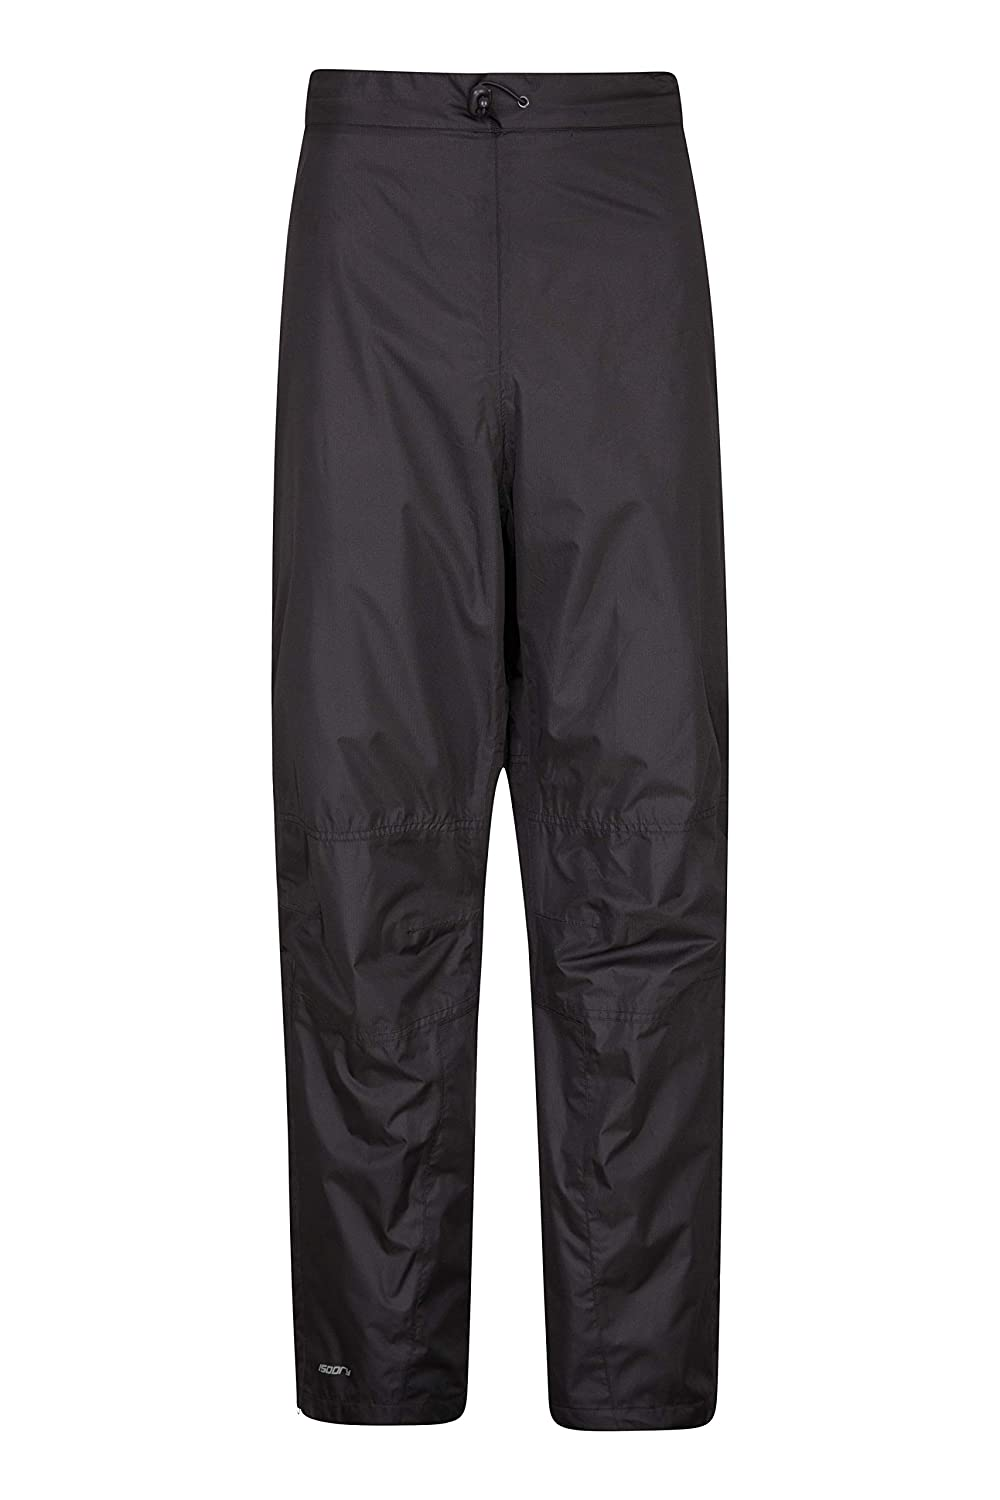 Mountain Warehouse Spray Mens Waterproof Trousers -Cool Walking Pants Black X-Large 016223005006